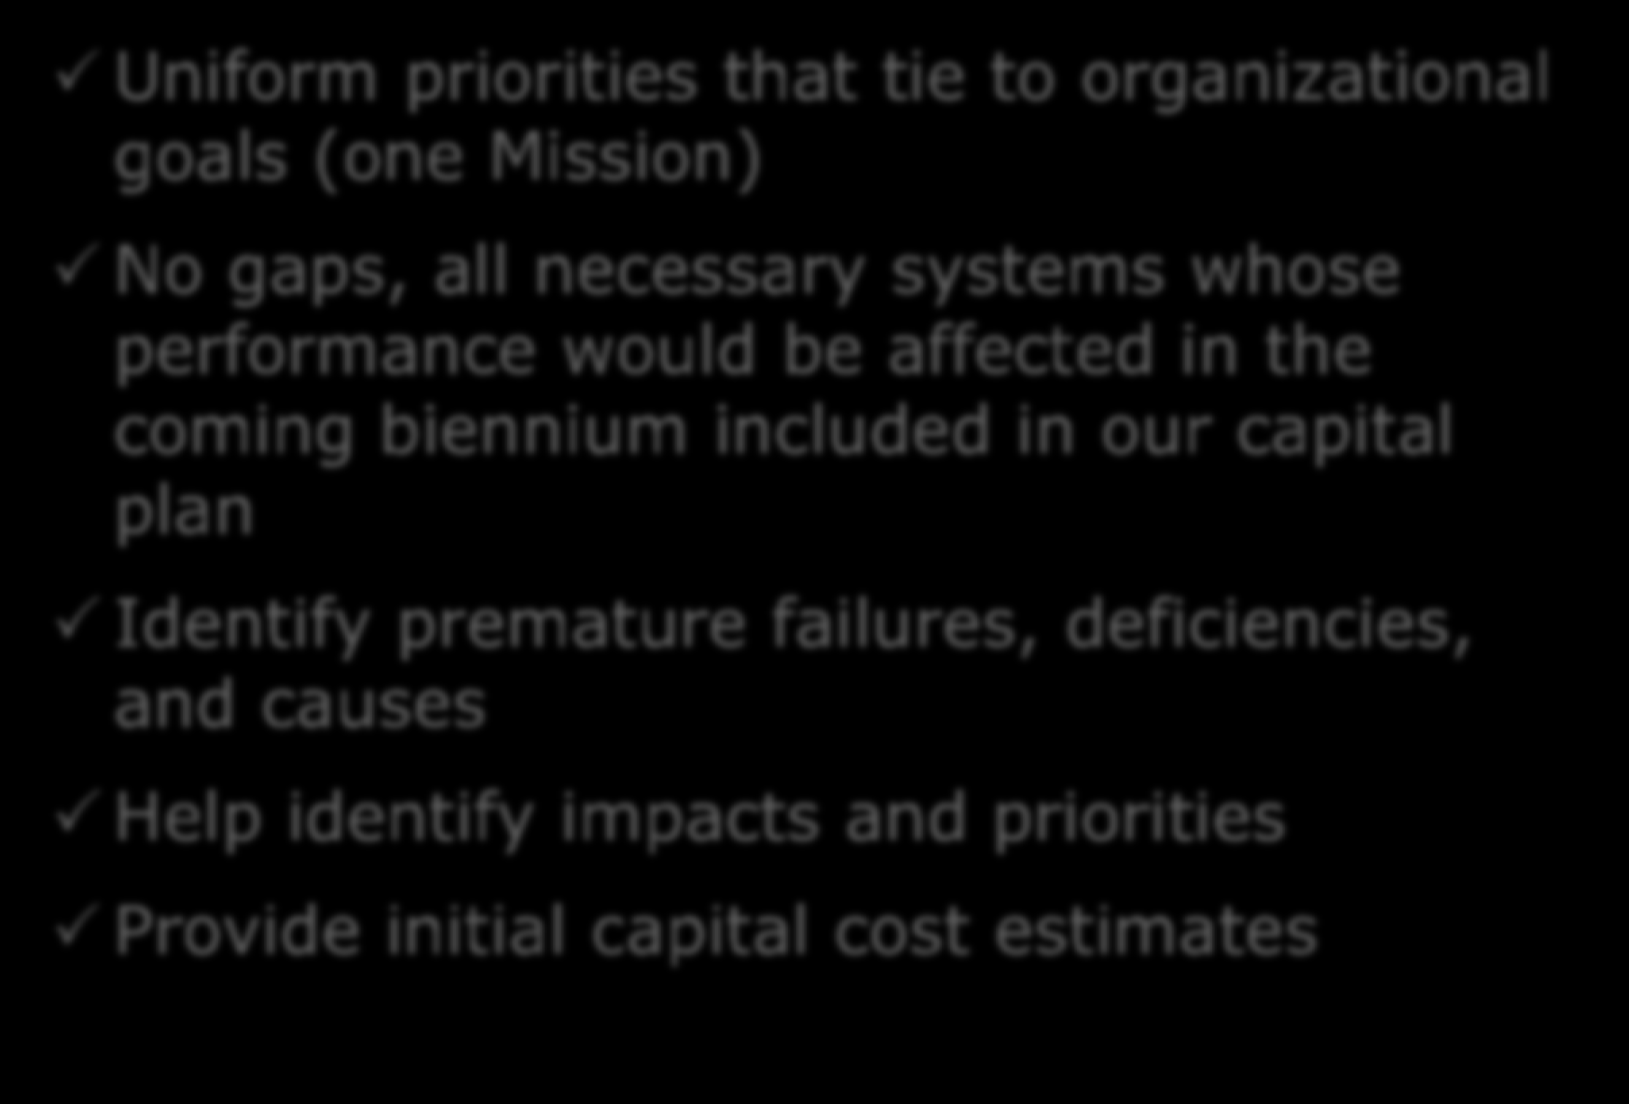 The FCA Objectives Uniform priorities that tie to organizational goals (one Mission) No gaps, all necessary systems whose performance would be affected in the coming